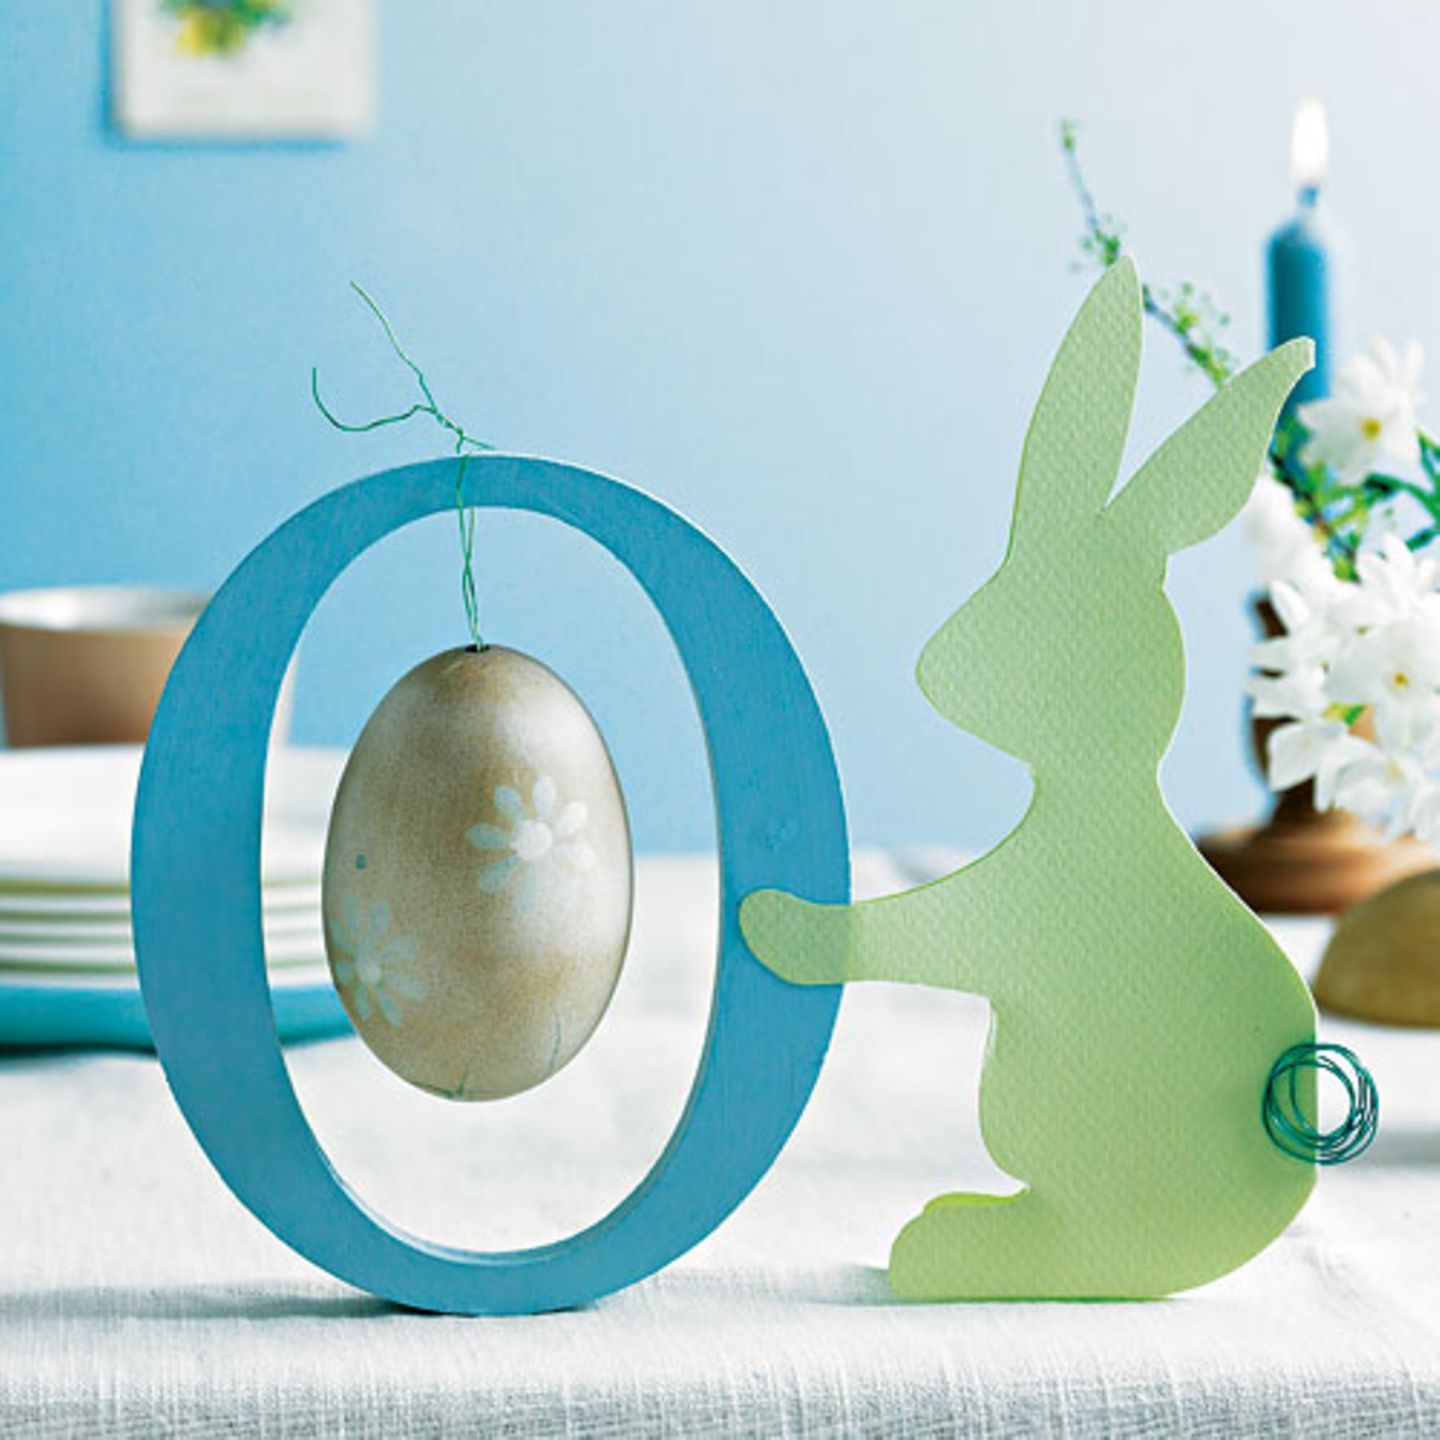 O(ster)-Hase